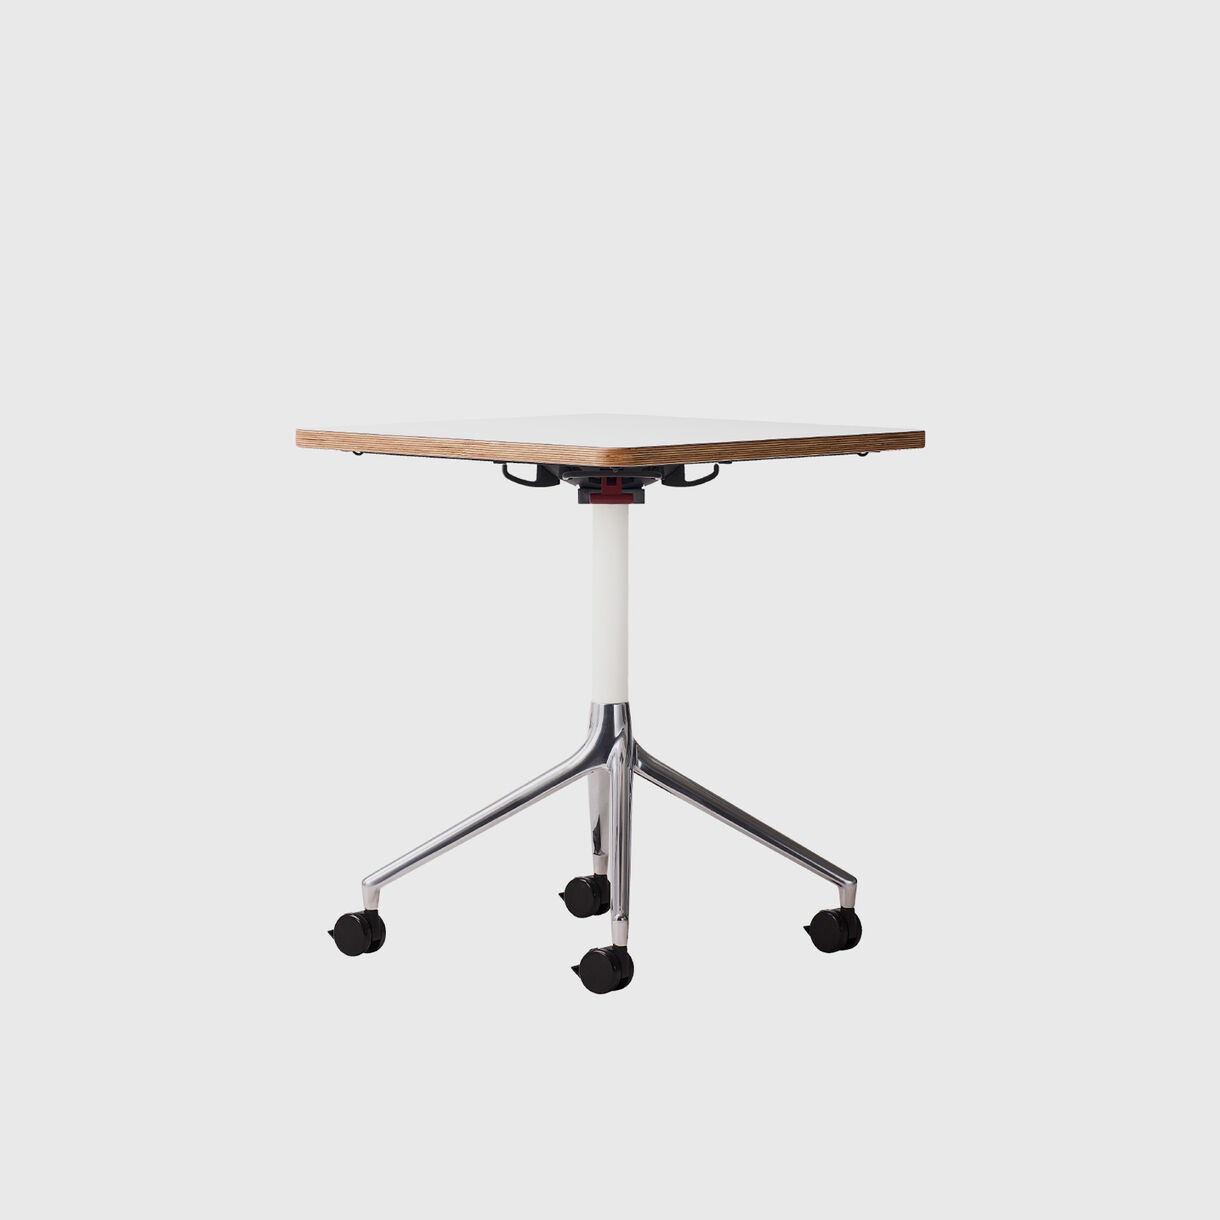 AS 400 Table, Square